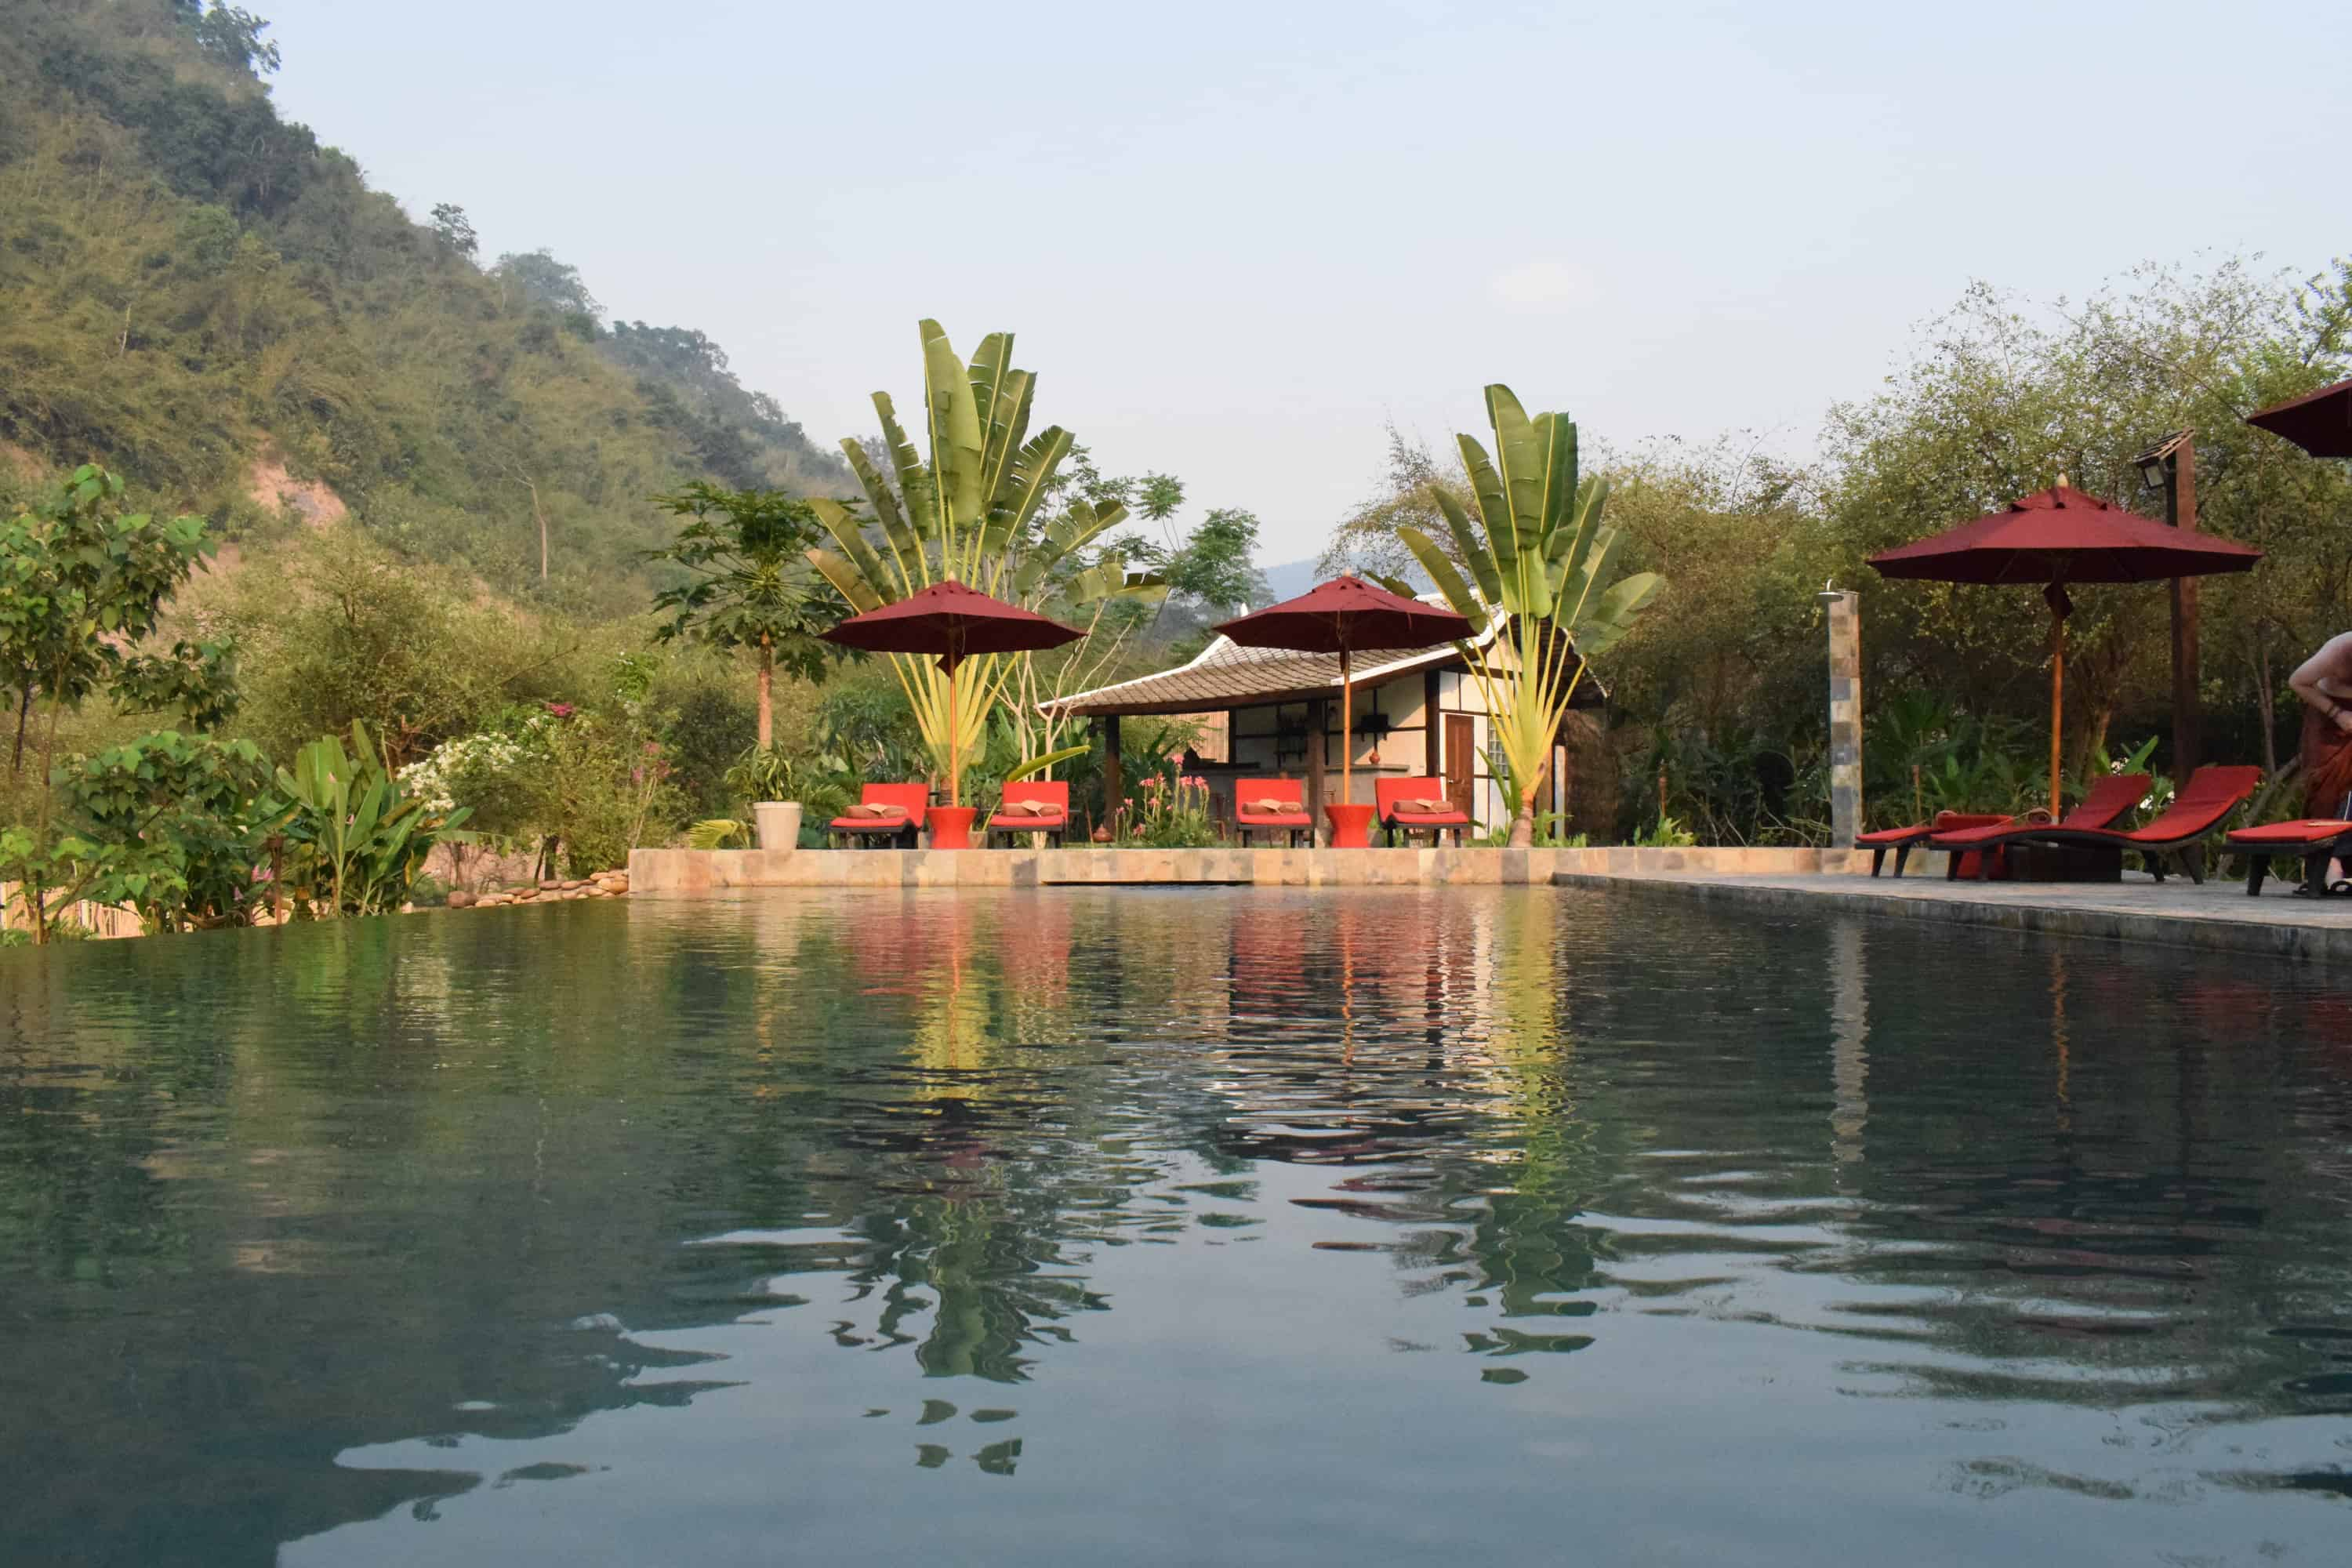 Swimming pool at Muang La Boutique Hotel in Laos